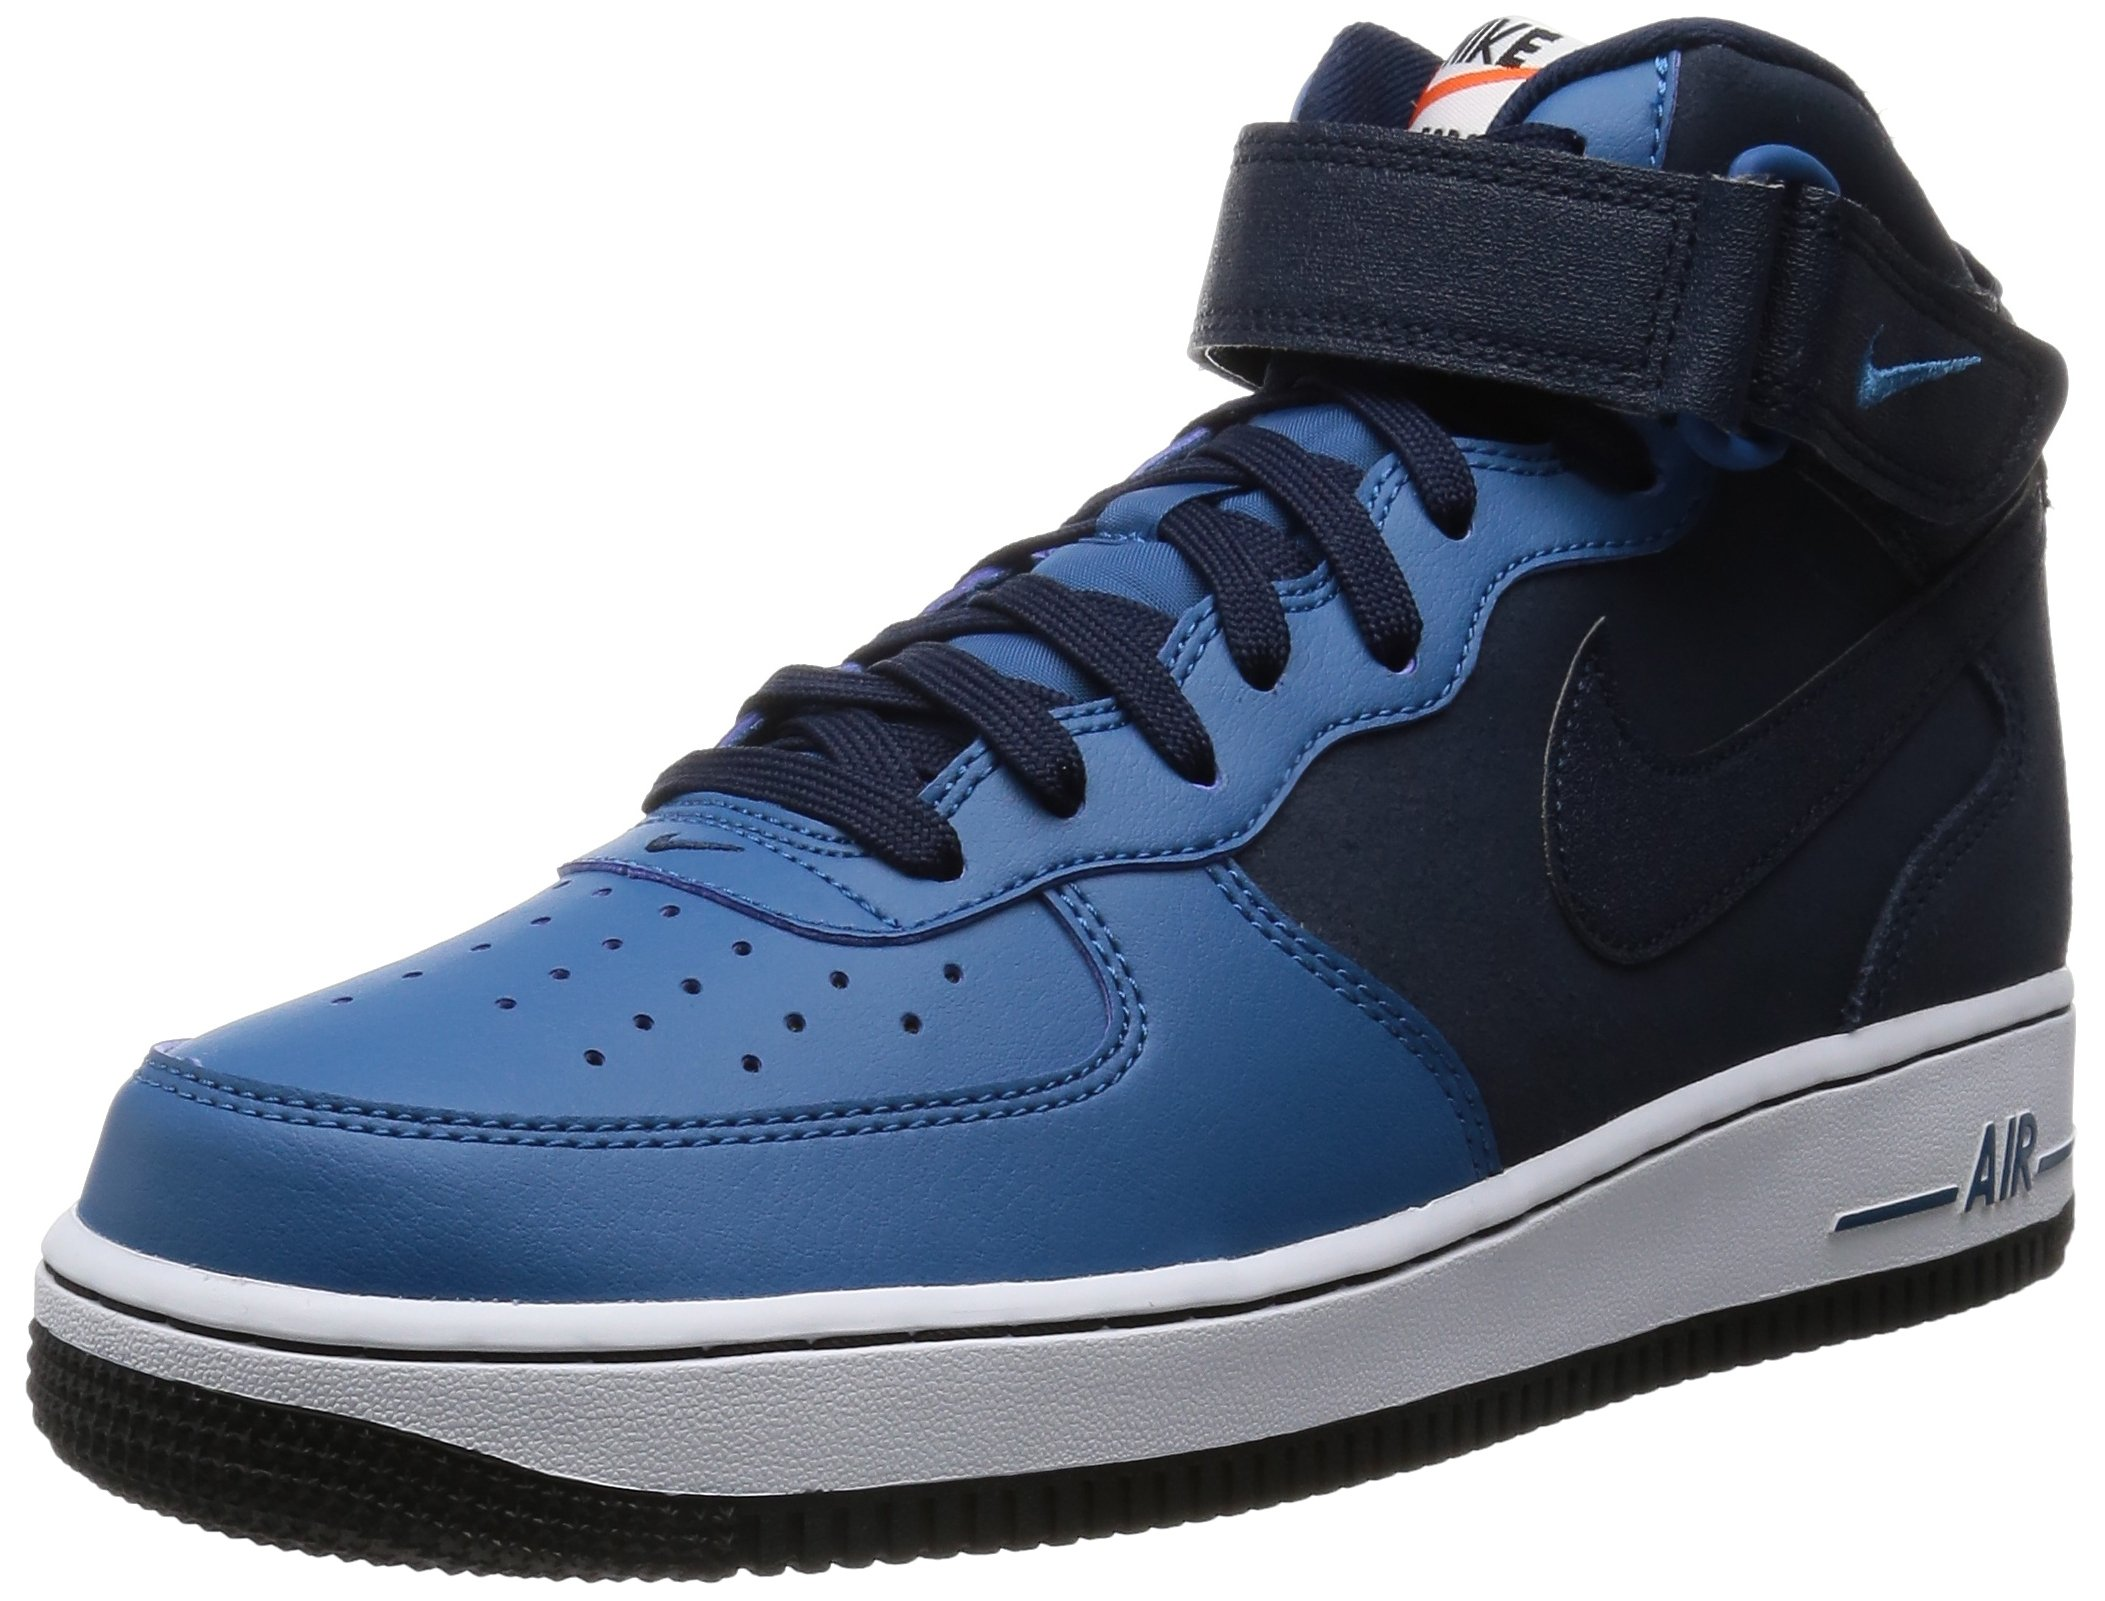 Nike Nike Air Force 1 Mid 07 Mens Style: 315123-406 Size: 10 M US